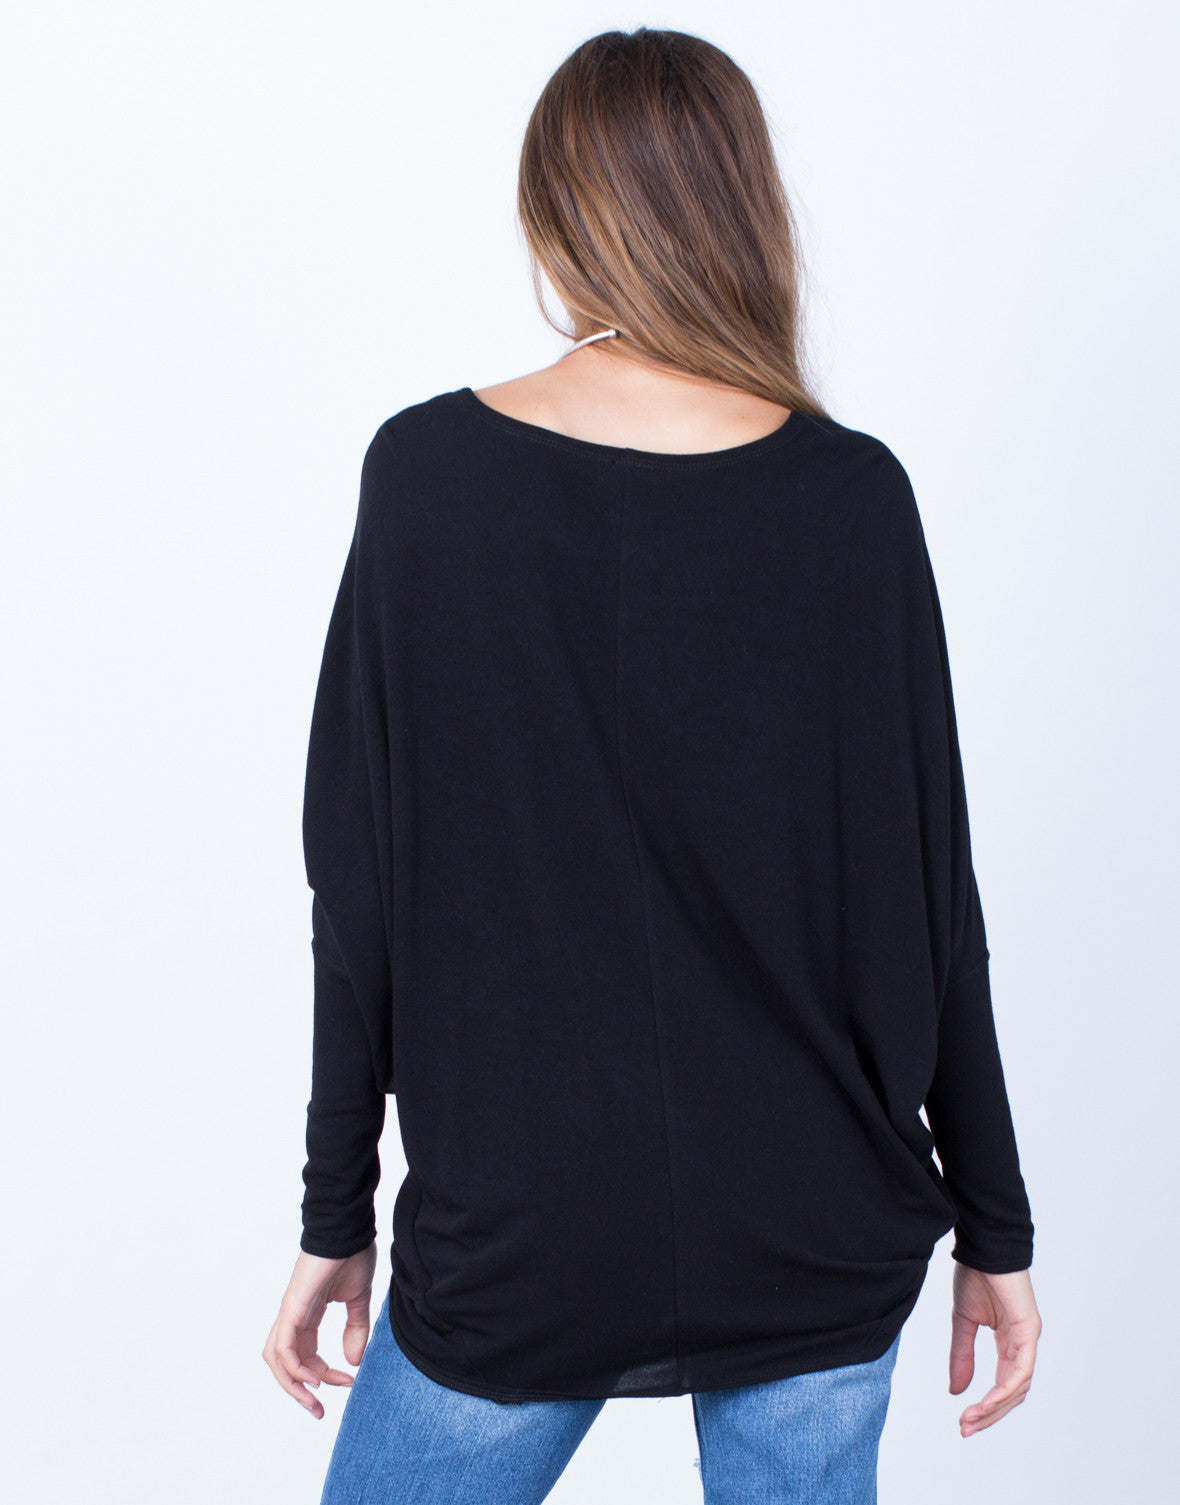 Back View of Long Sleeve Dolman Basic Soft Top